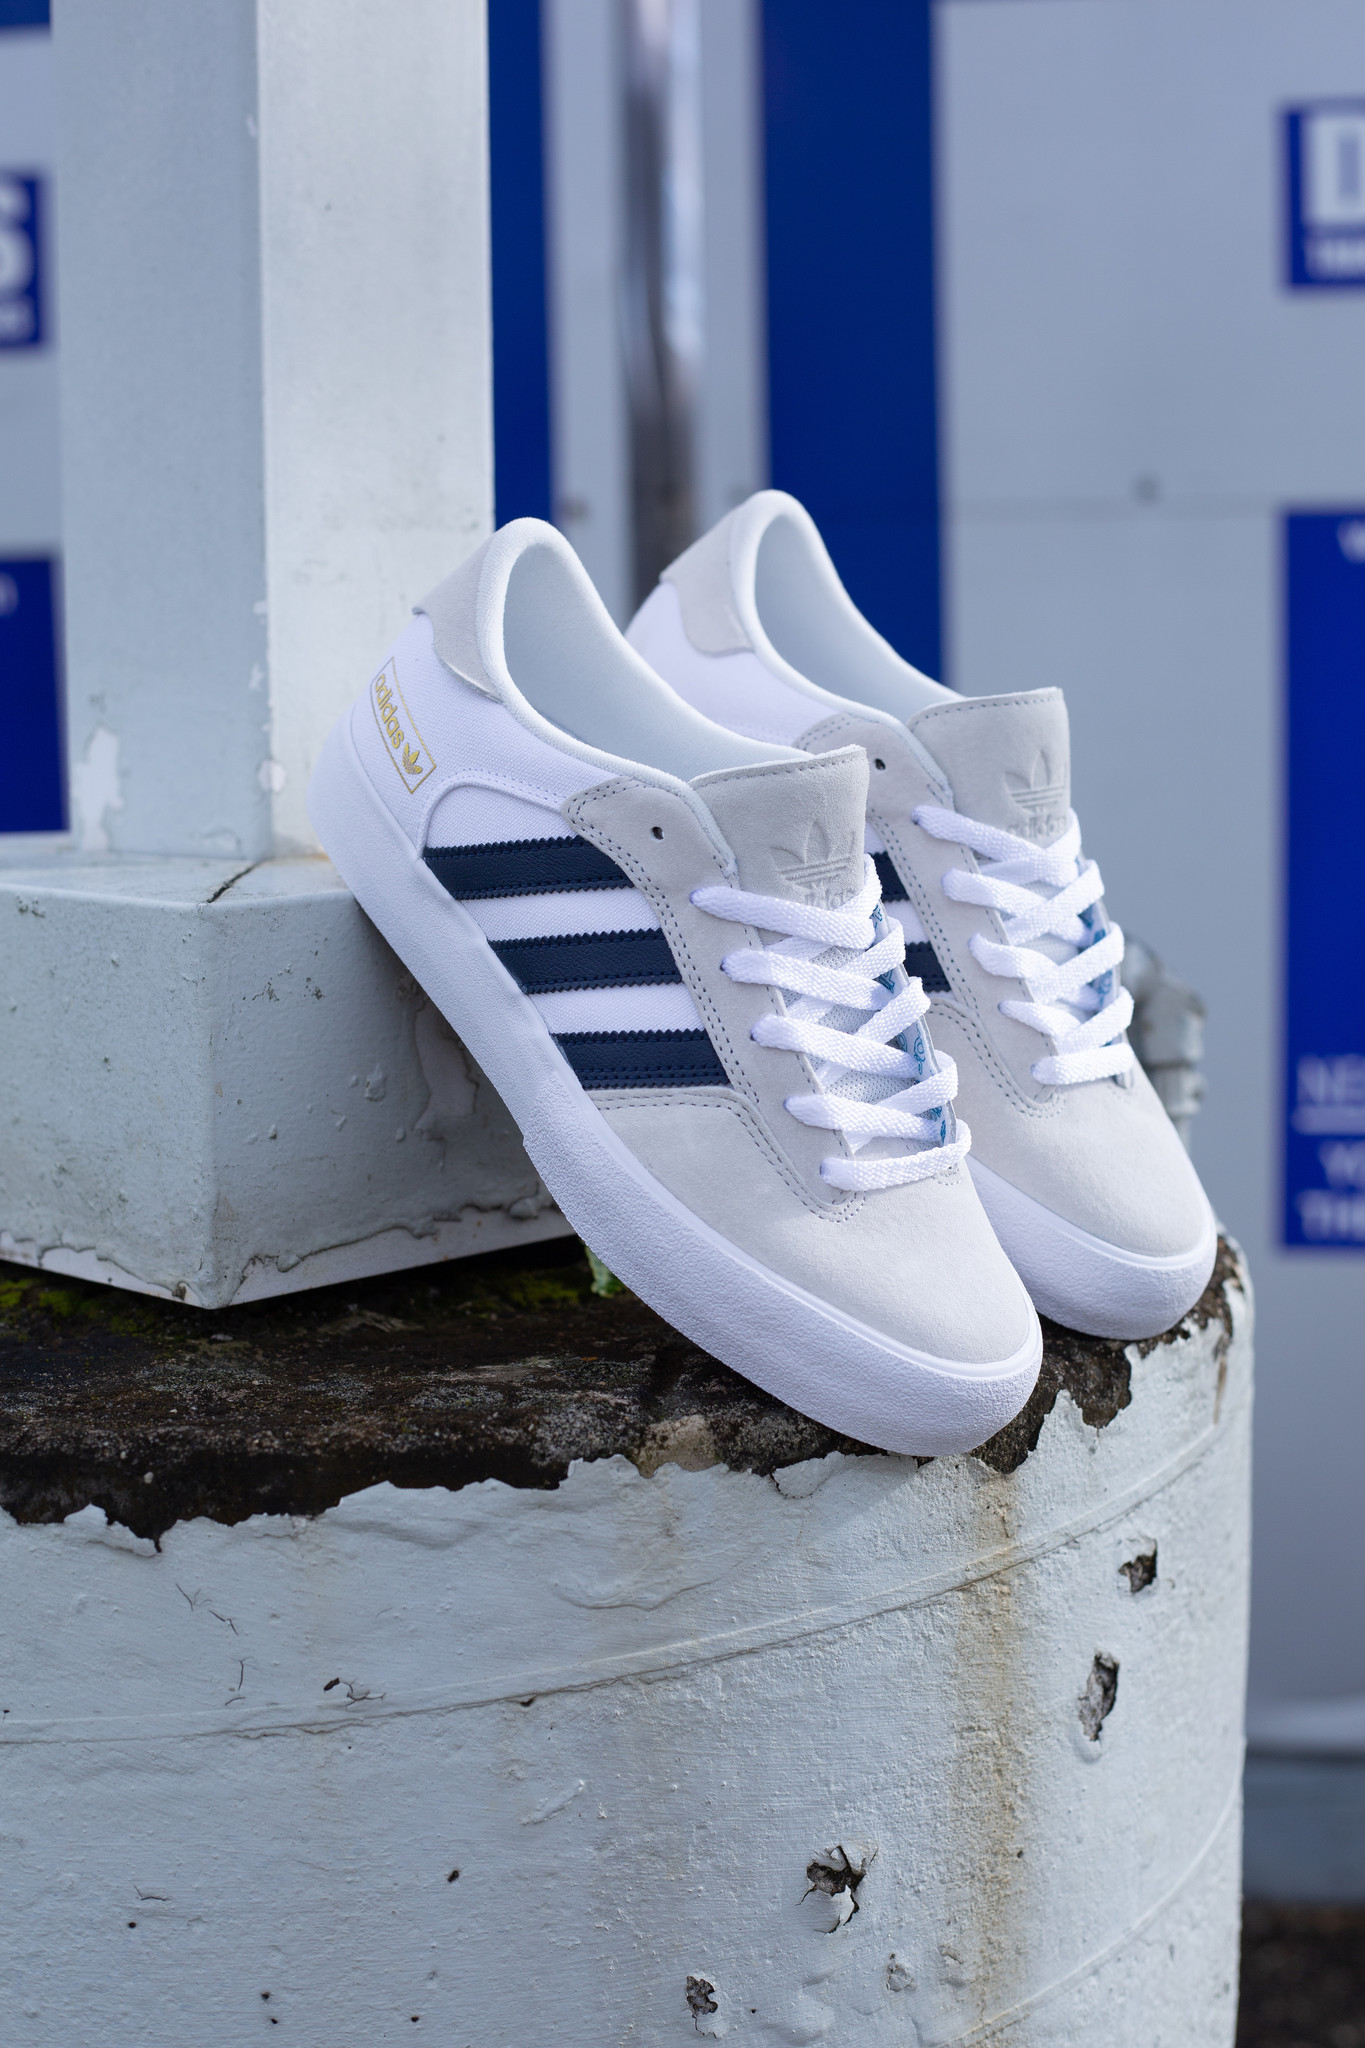 adidas Matchbreak Super white/navy